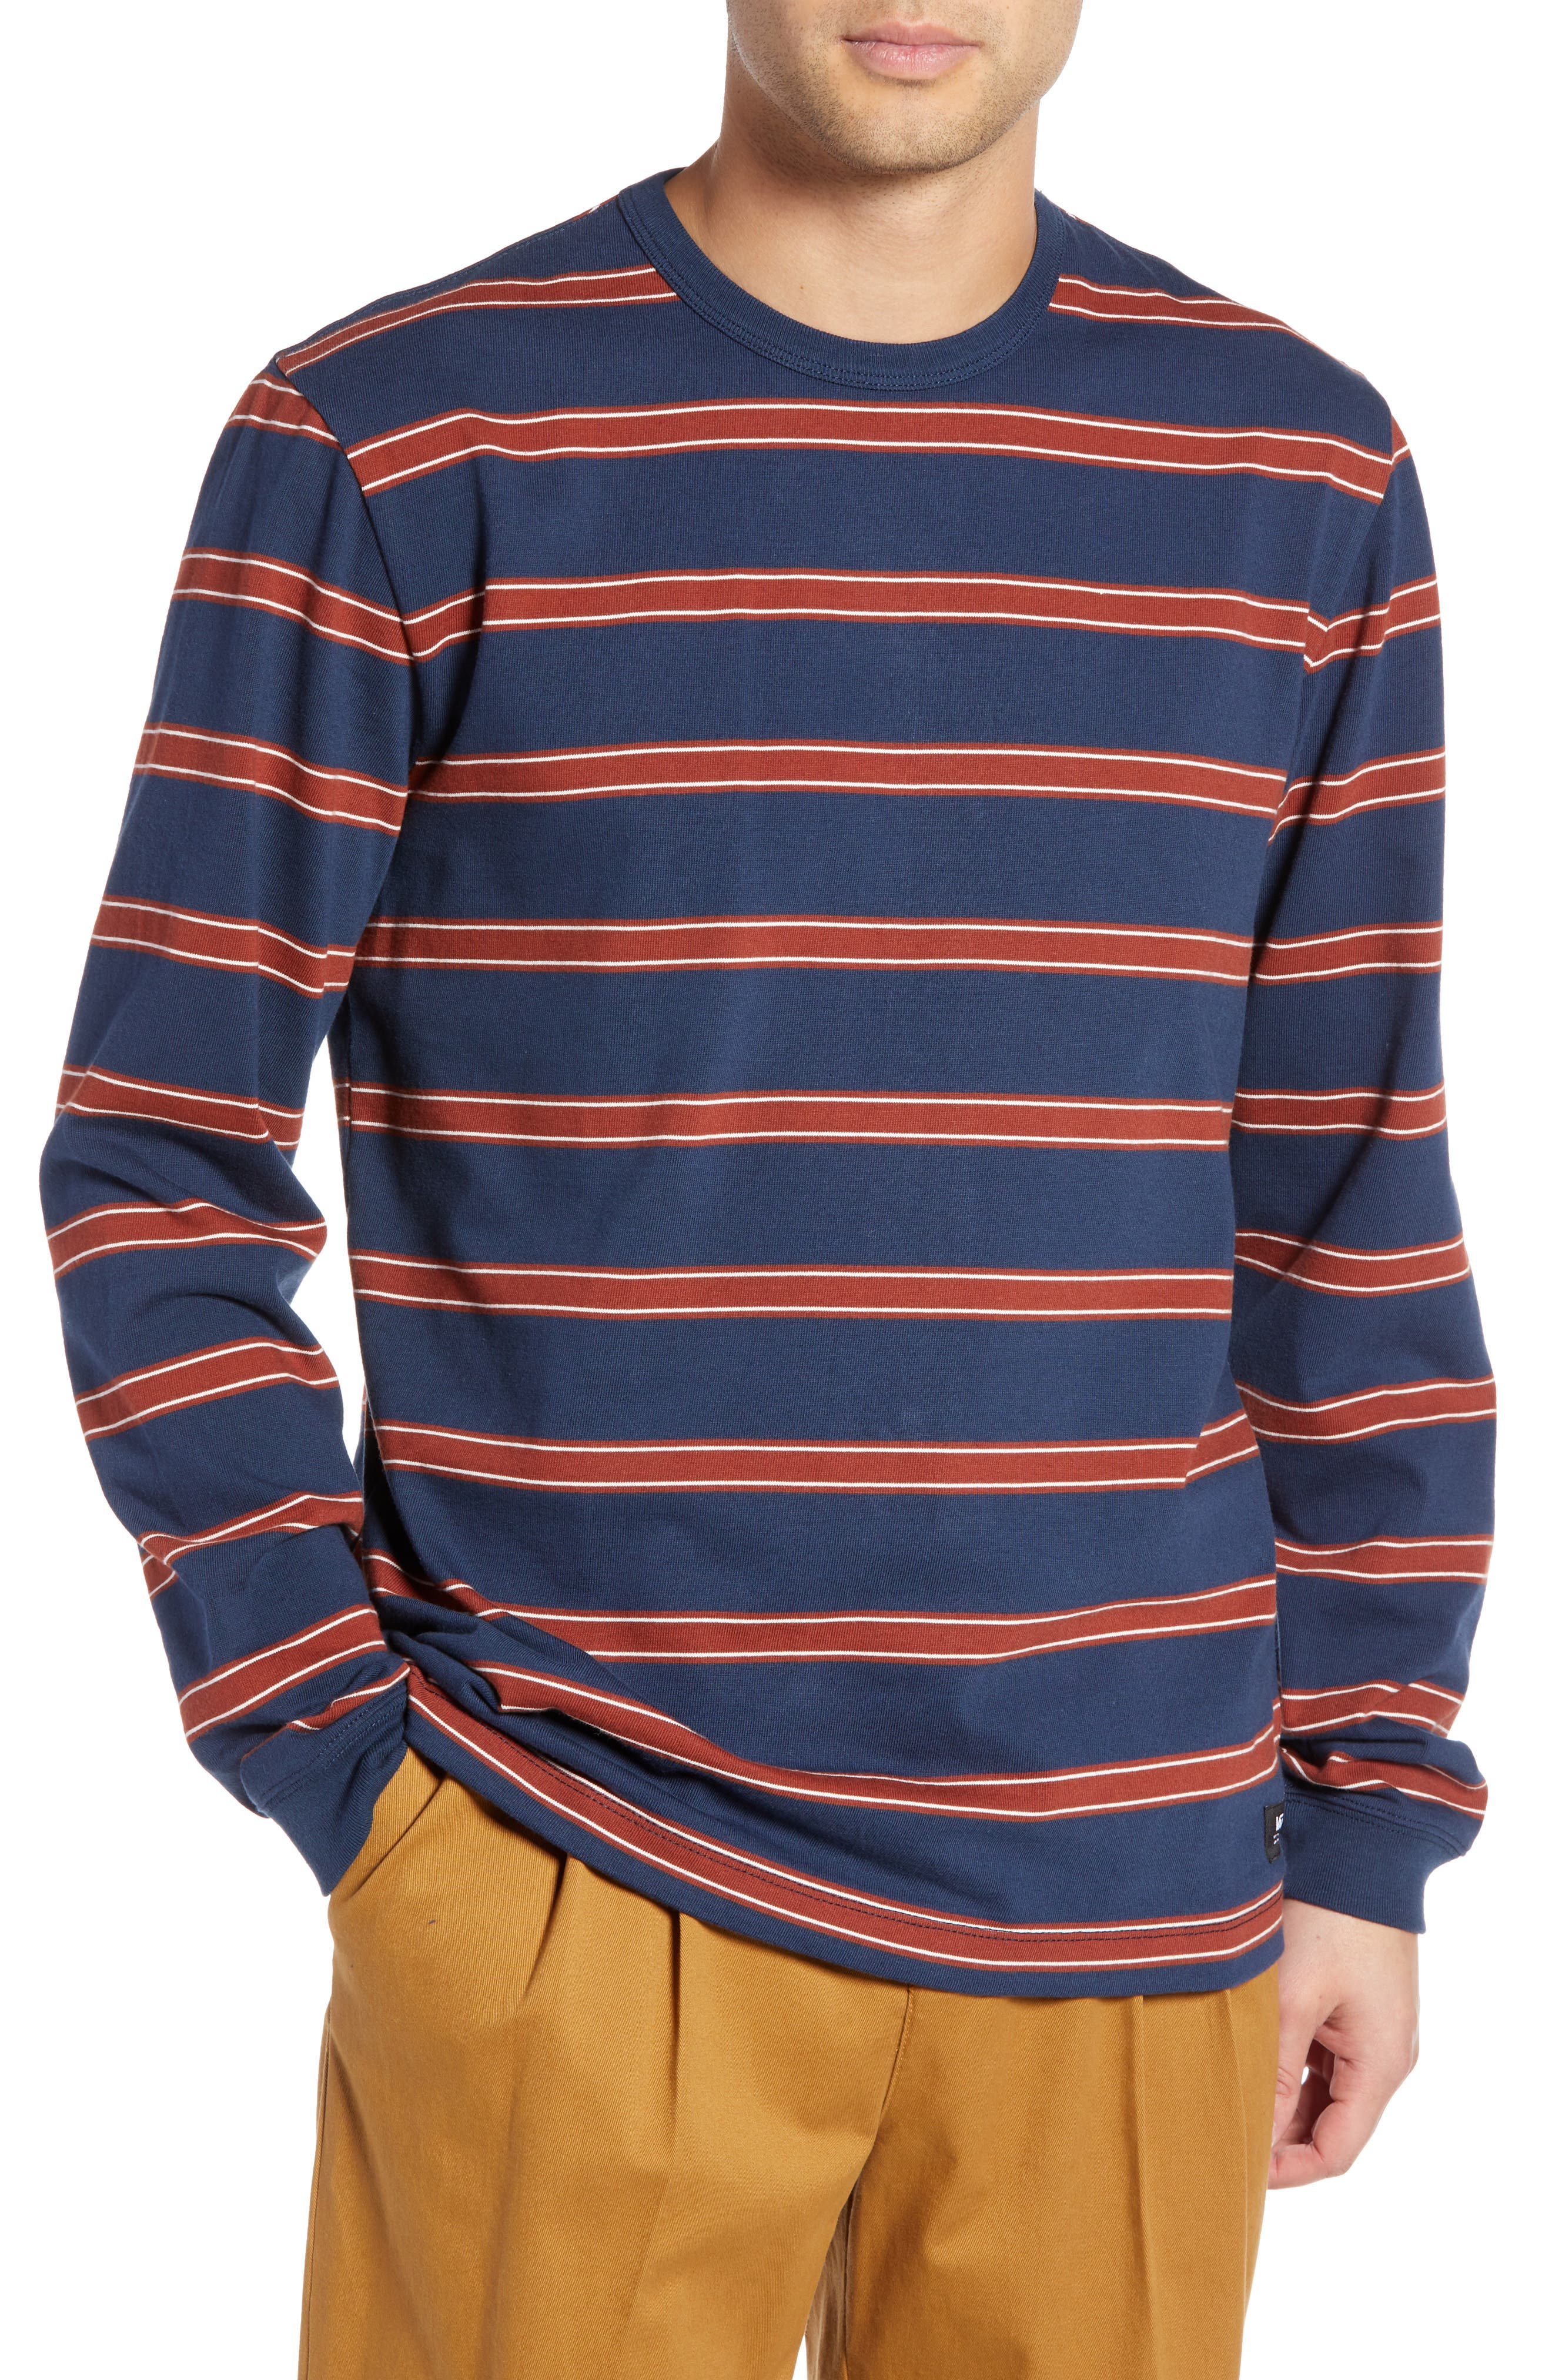 Watson Striped Long Sleeve T-Shirt,                         Main,                         color, 401